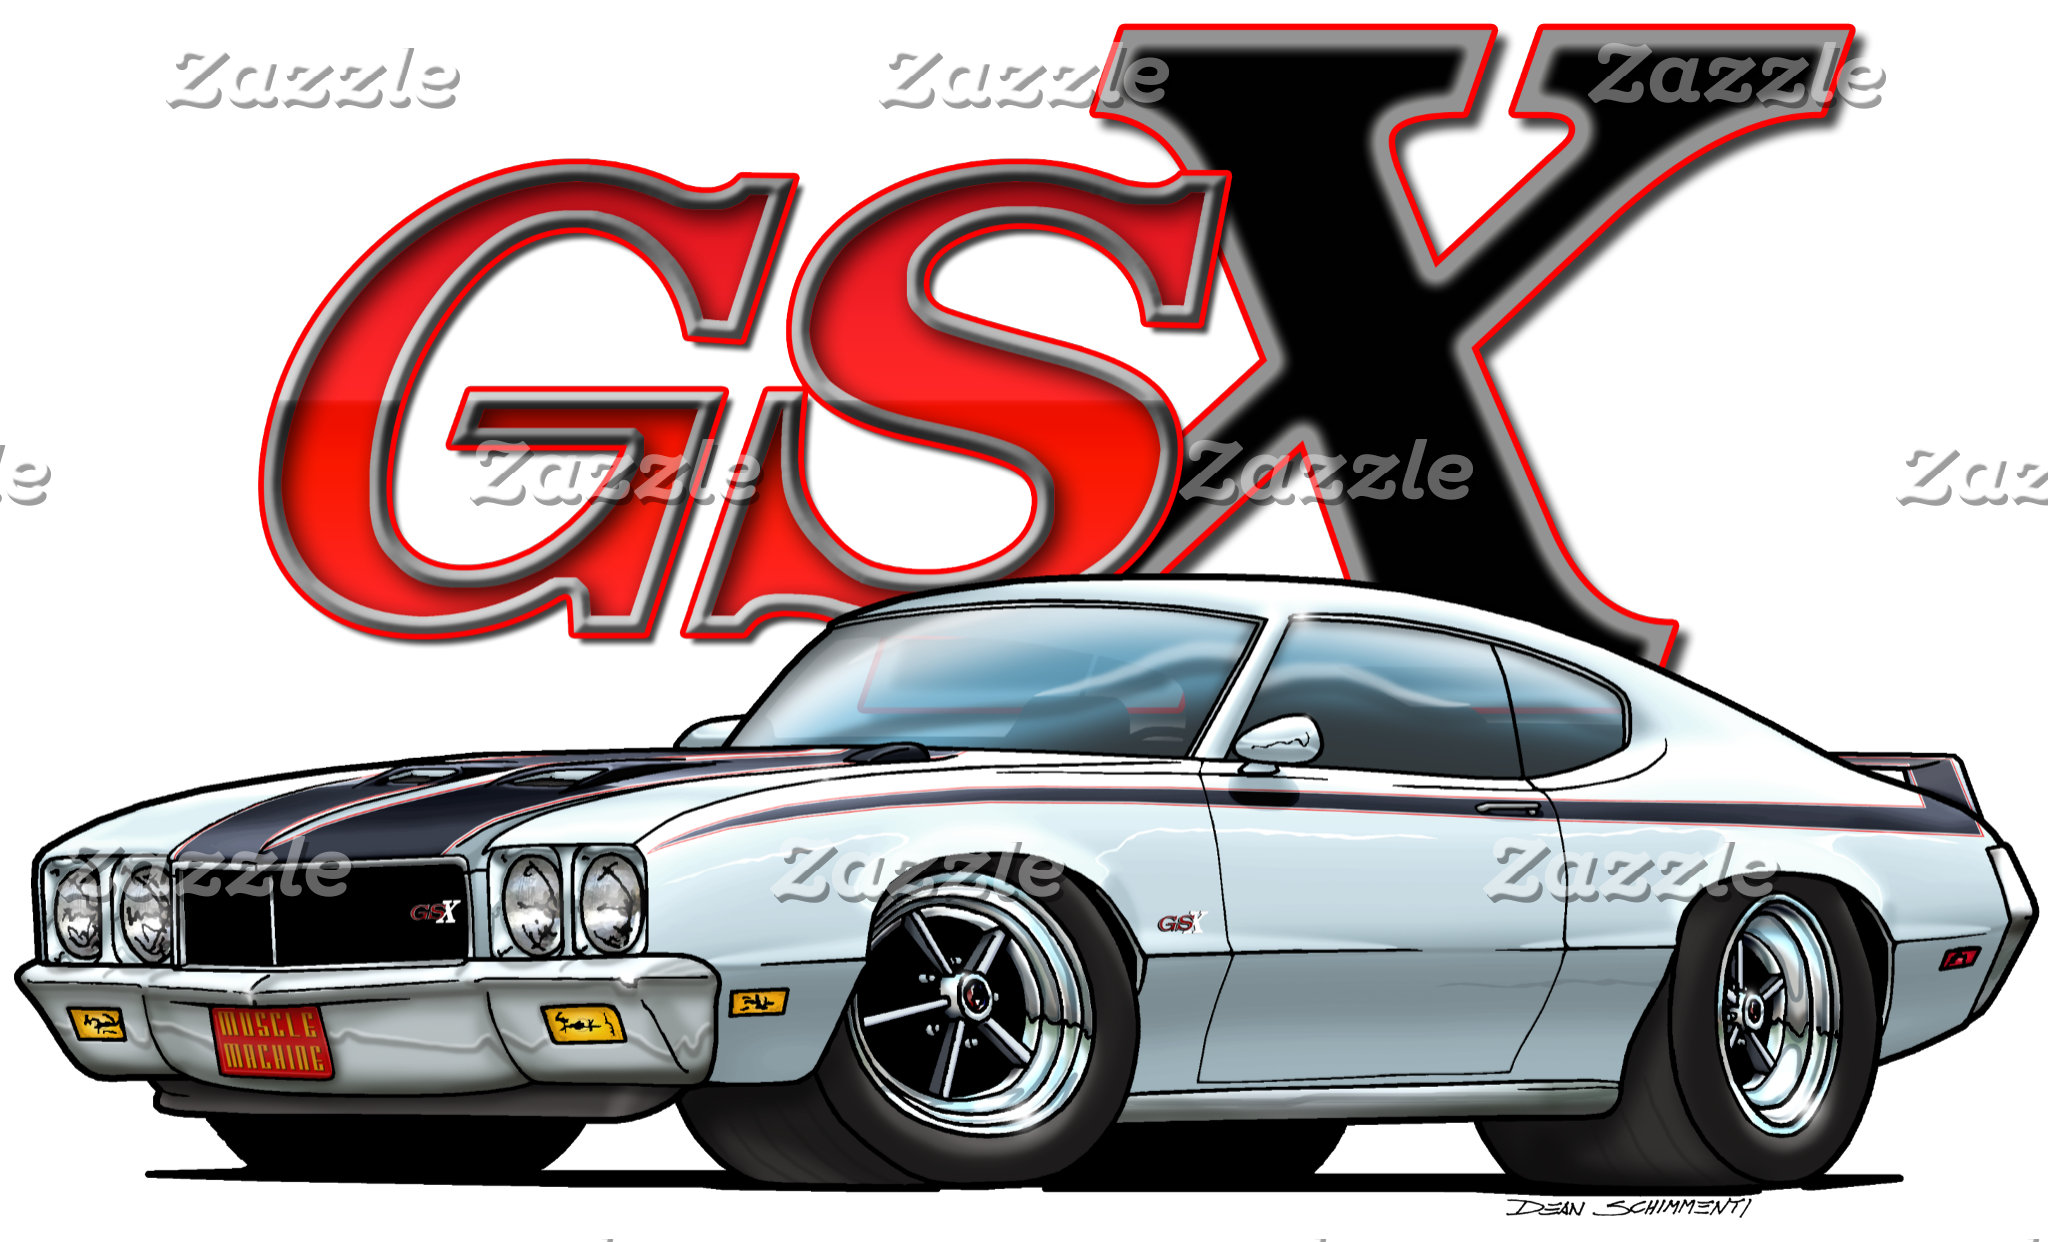 Buick Skylark, GS, and GSX